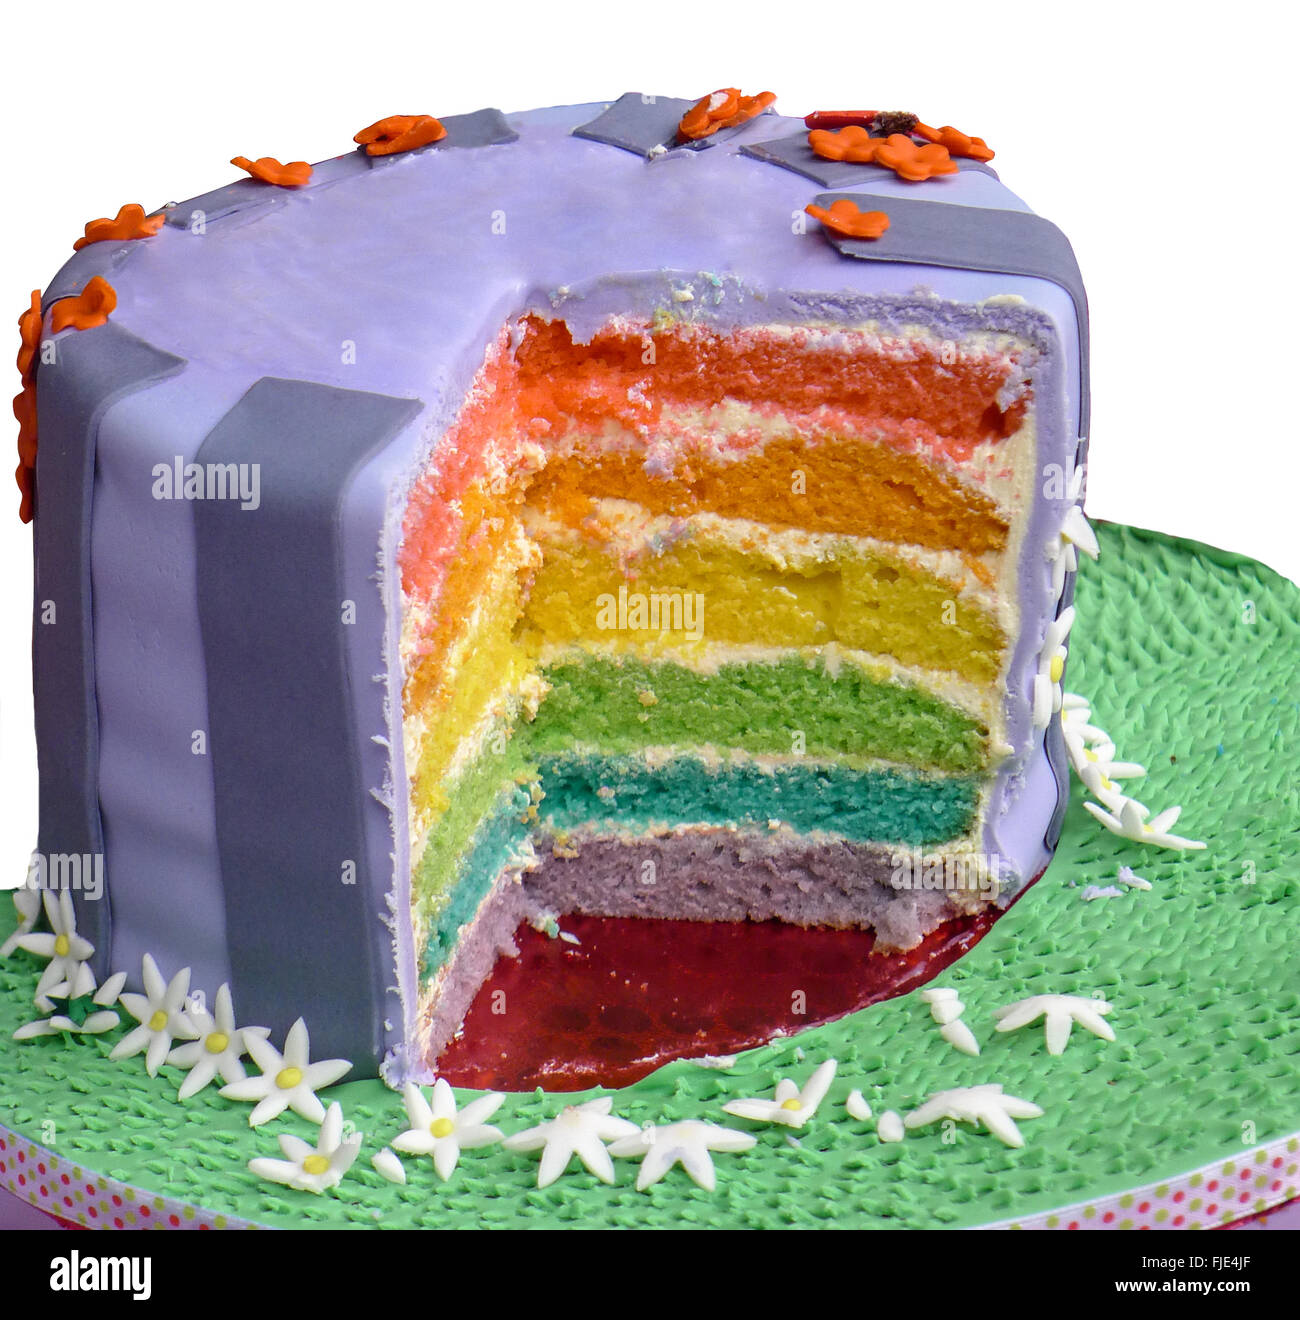 Multi-layered birthday cake with slice cut out to show layers - Stock Image